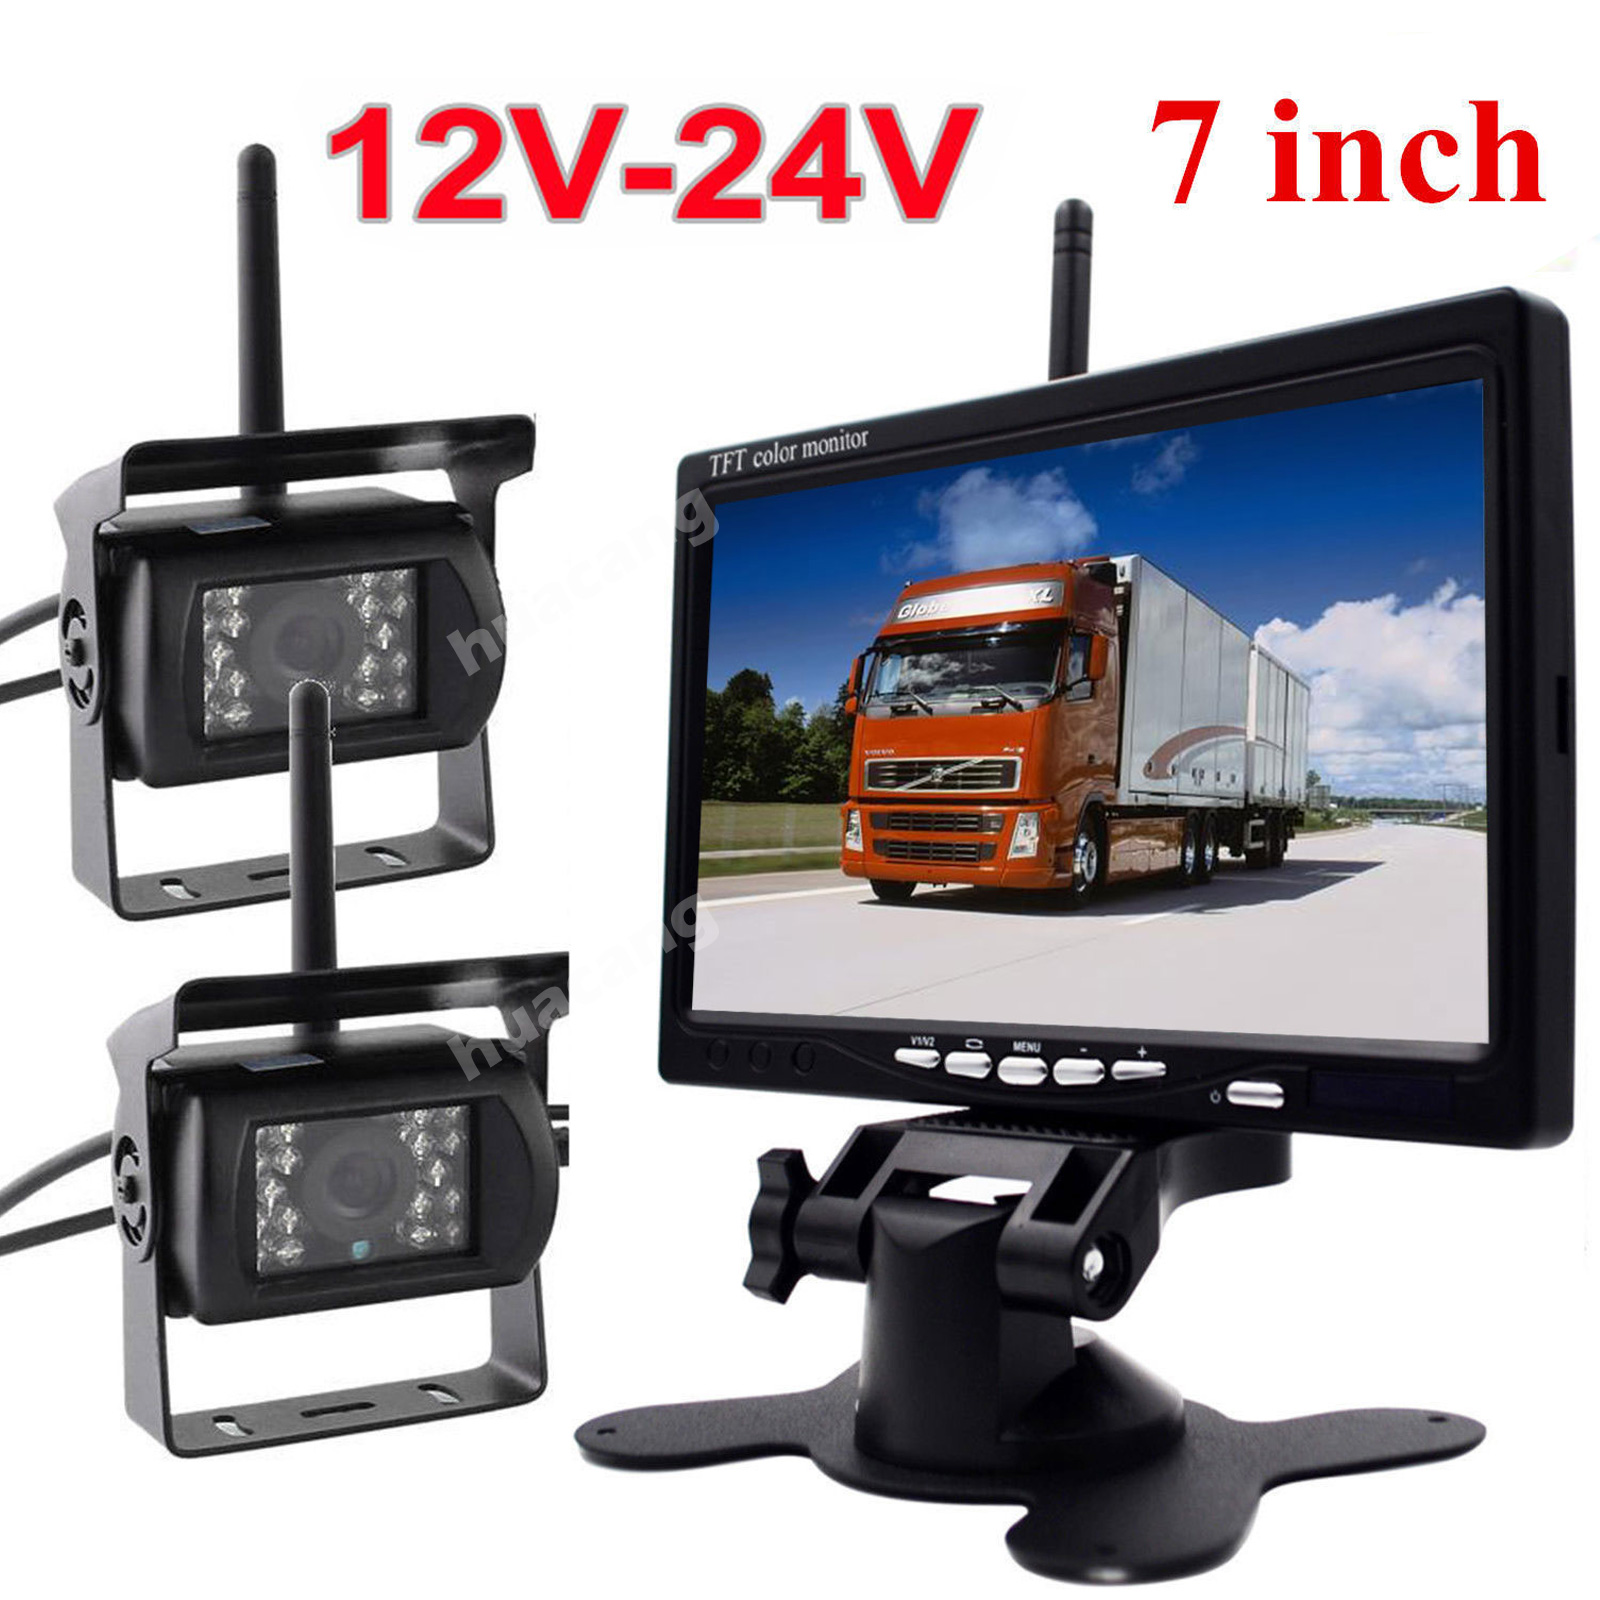 "2x 12V 24V Wireless Waterproof Night Vision Reversing Backup Camera + 7"" TFT LCD Rear View Monitor for Bus Truck RV